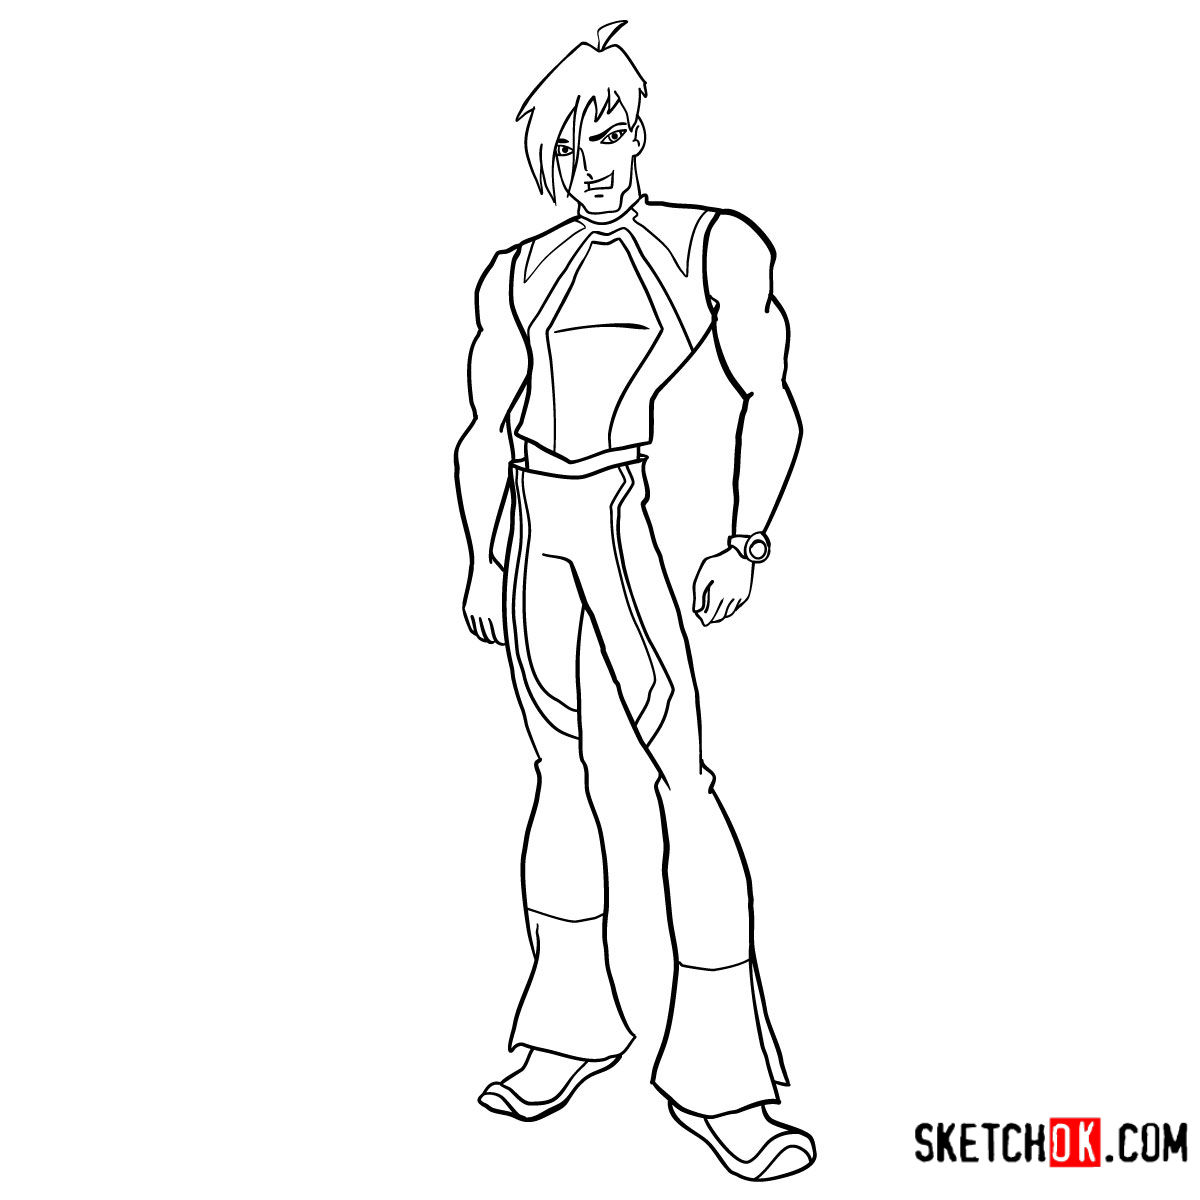 How to draw Brandon from Winx